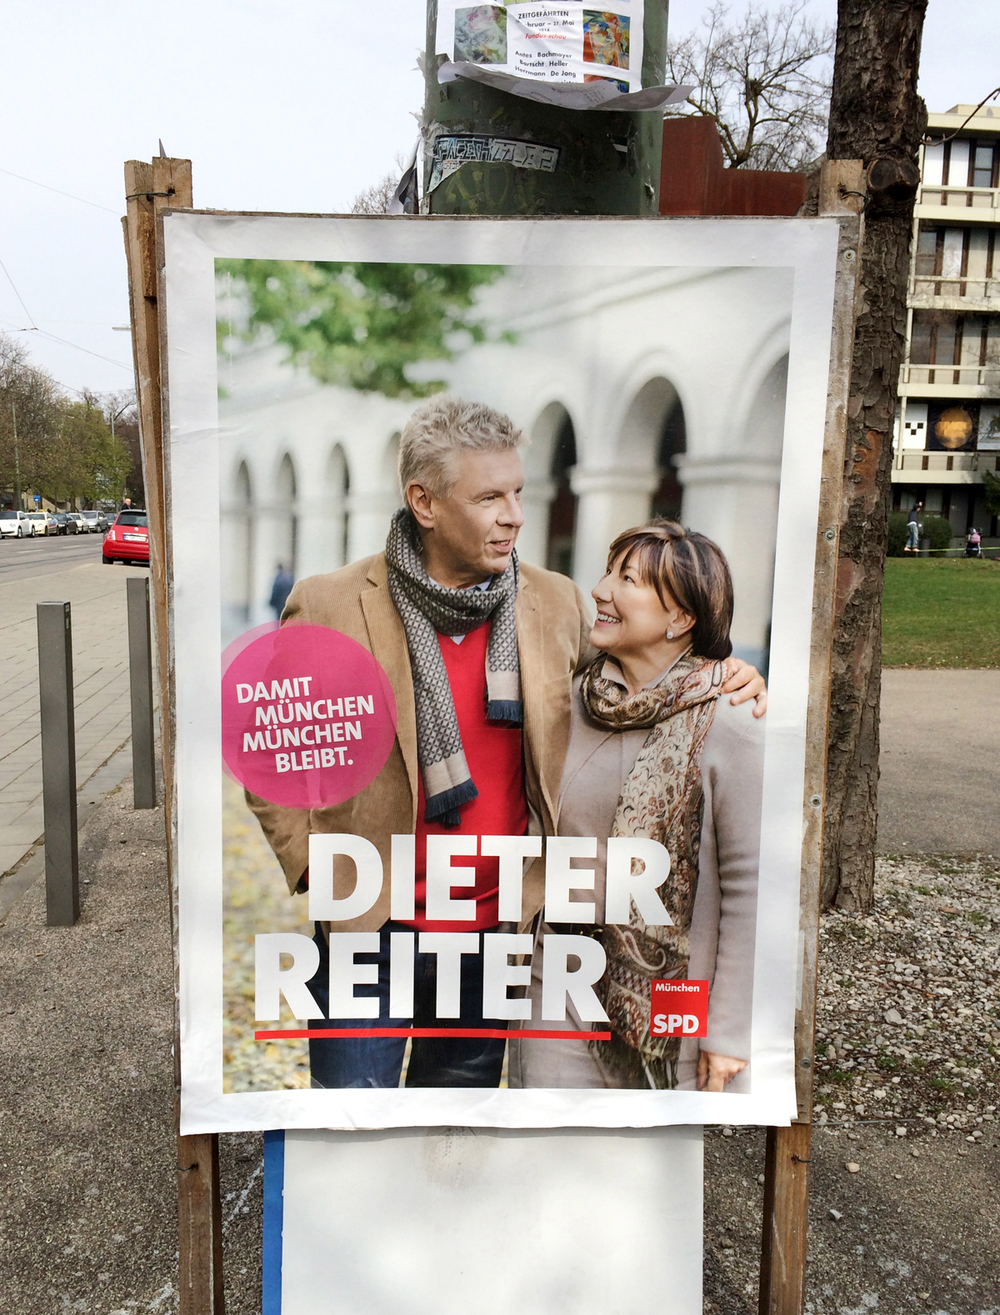 There is an election going on in Munich right now, and there are posters everywhere. Isn't this one beautiful? I think you have to be a fashion model to run for office in Europe :)